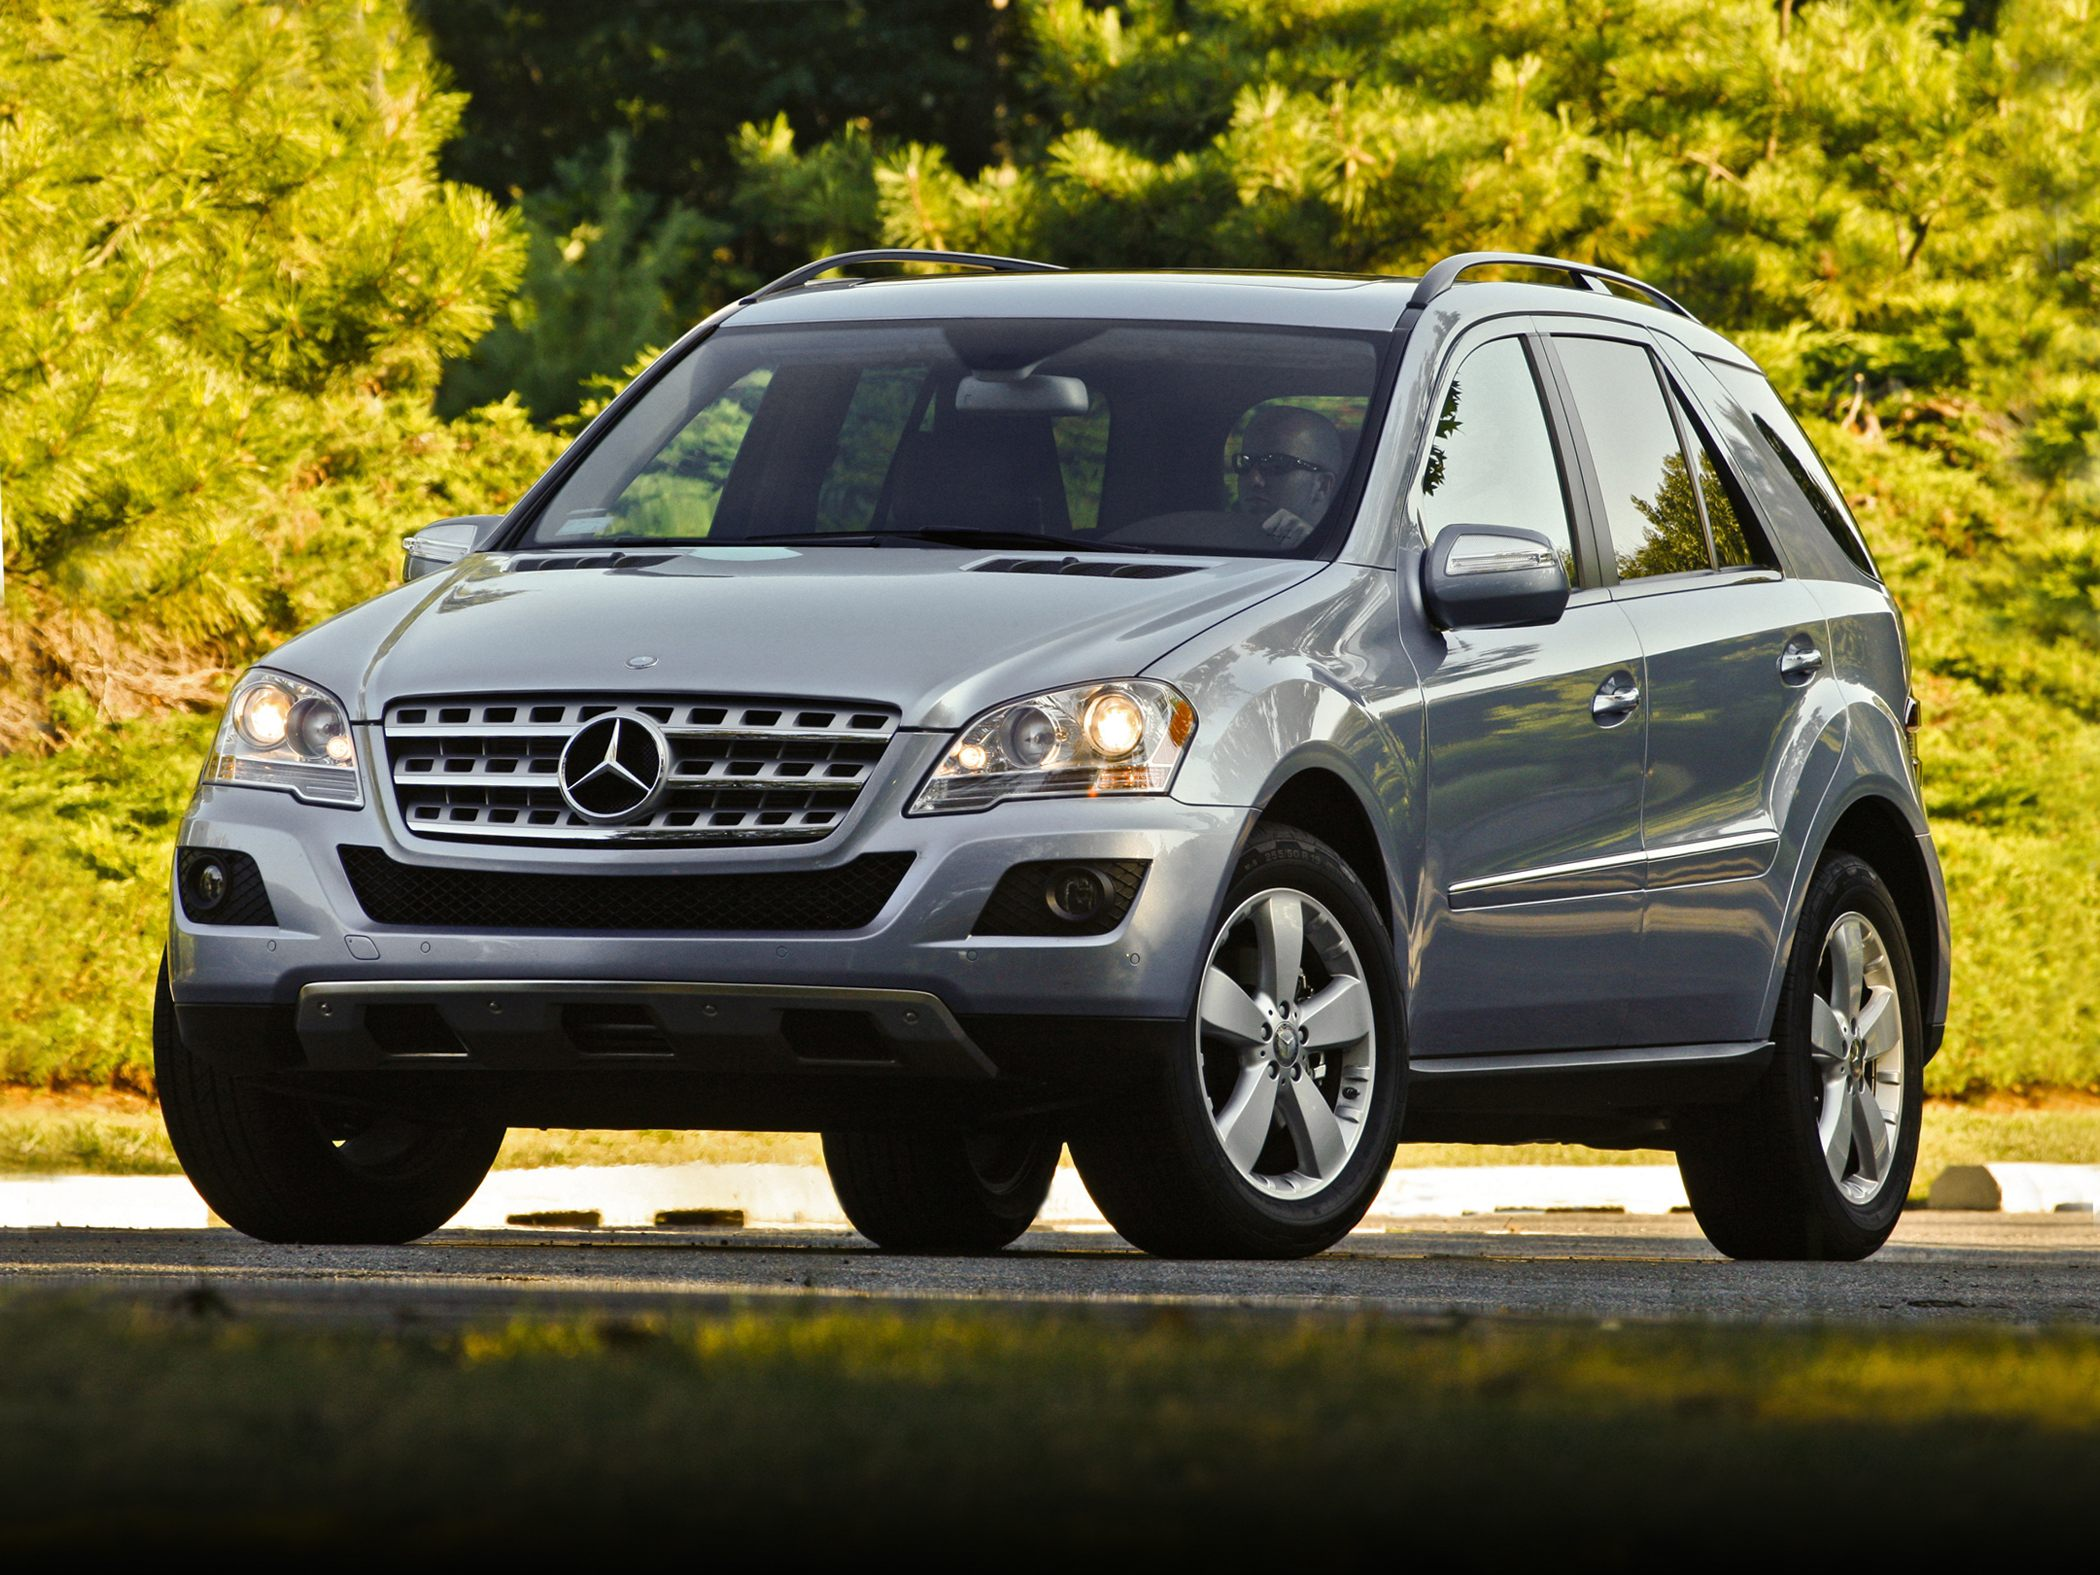 Mercedes benz ML 2010 Review Amazing and – Look at